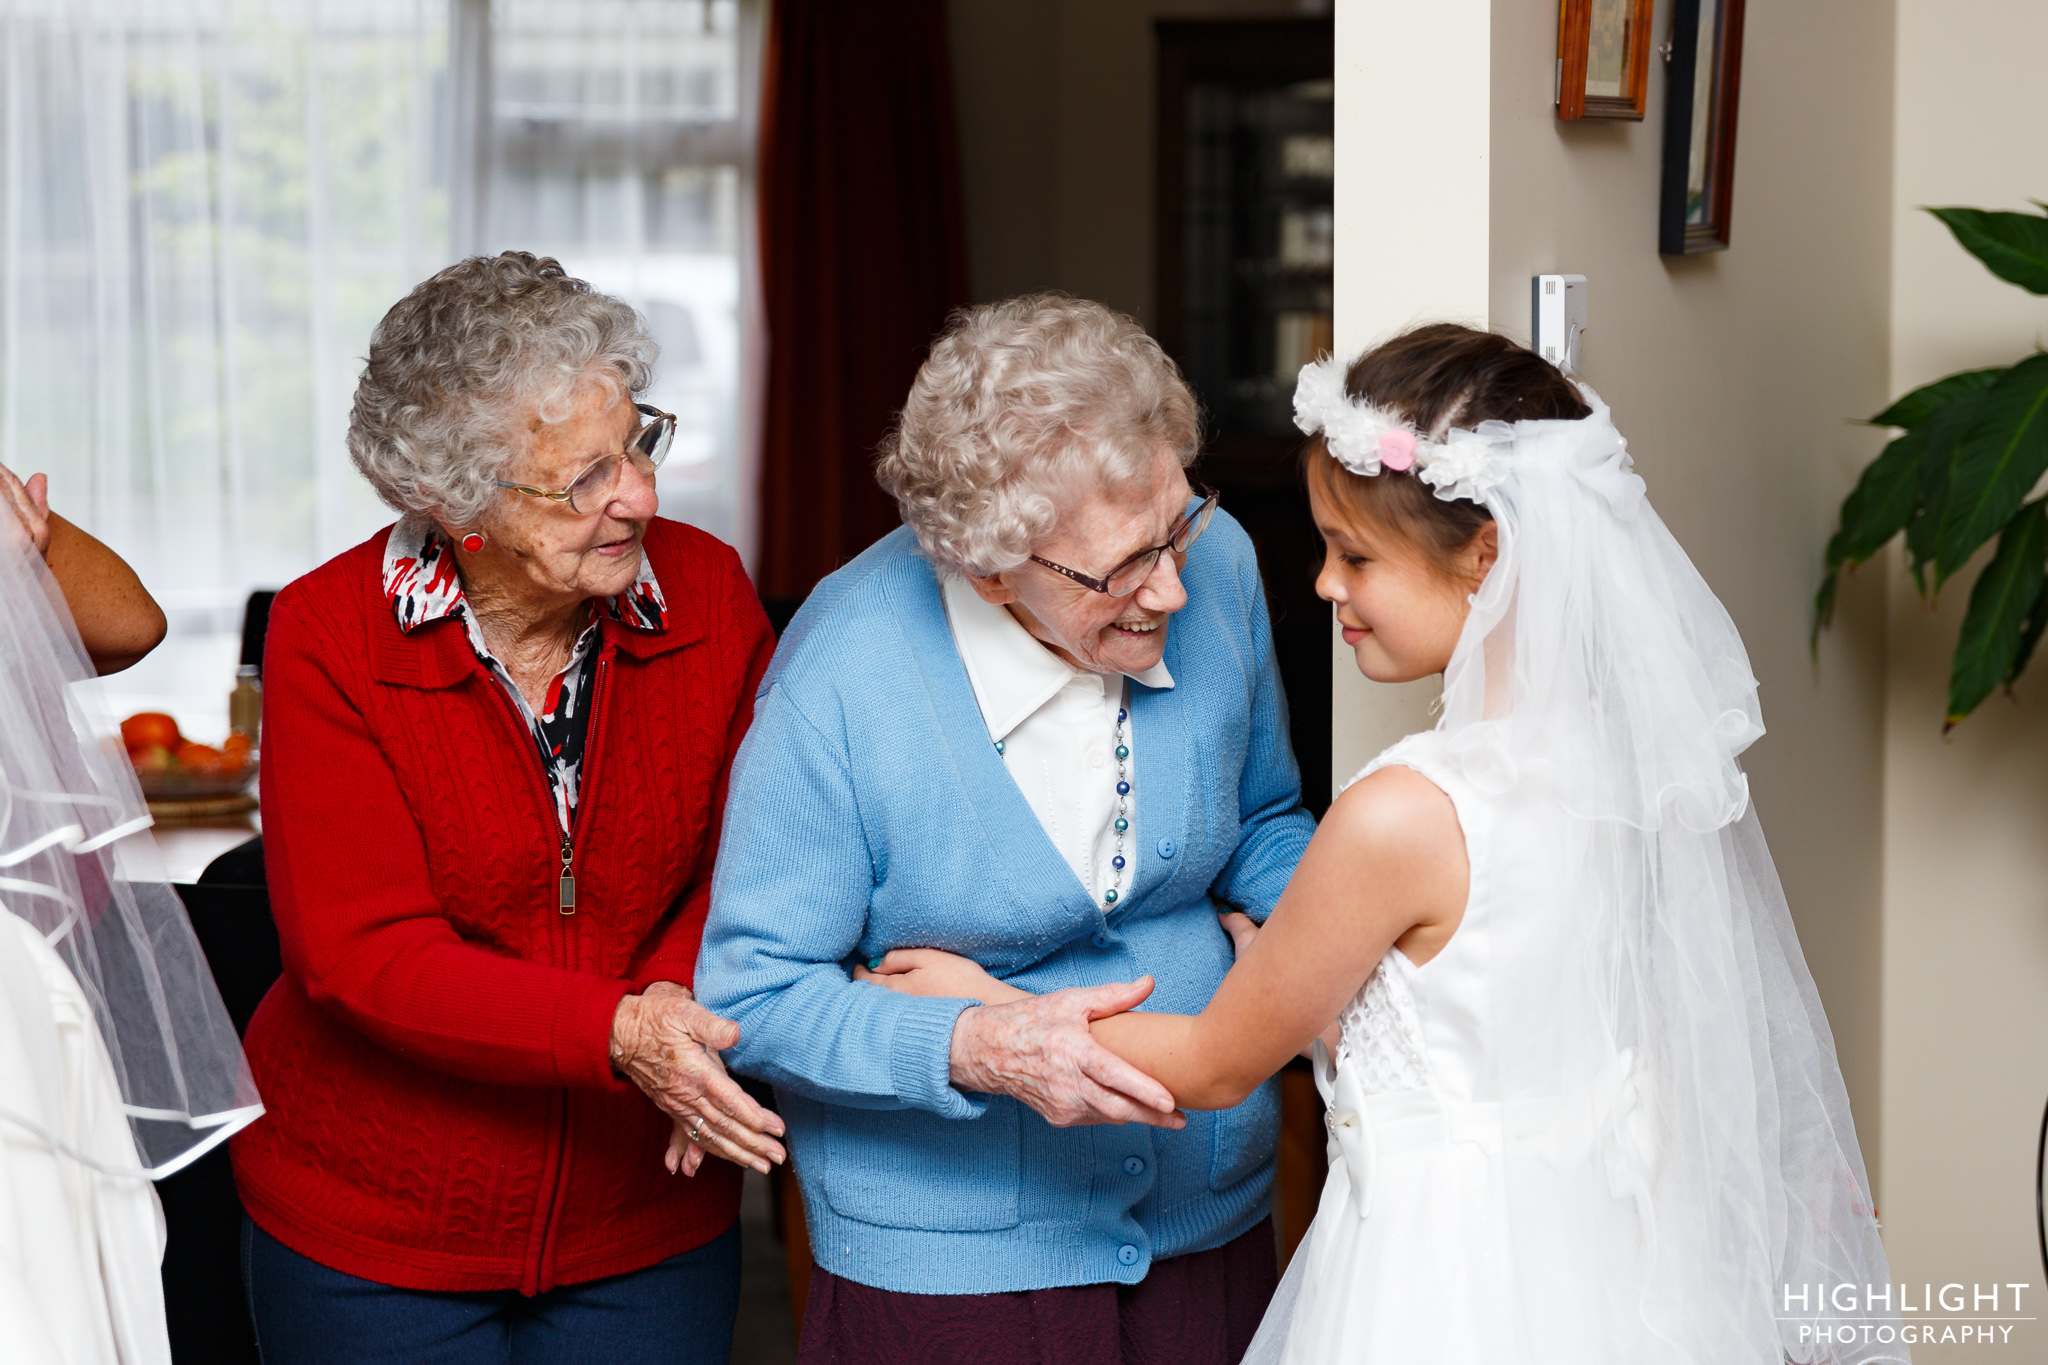 highlight_wedding_photography_palmerston_north_manawatu_chalet_wedding-22.jpg